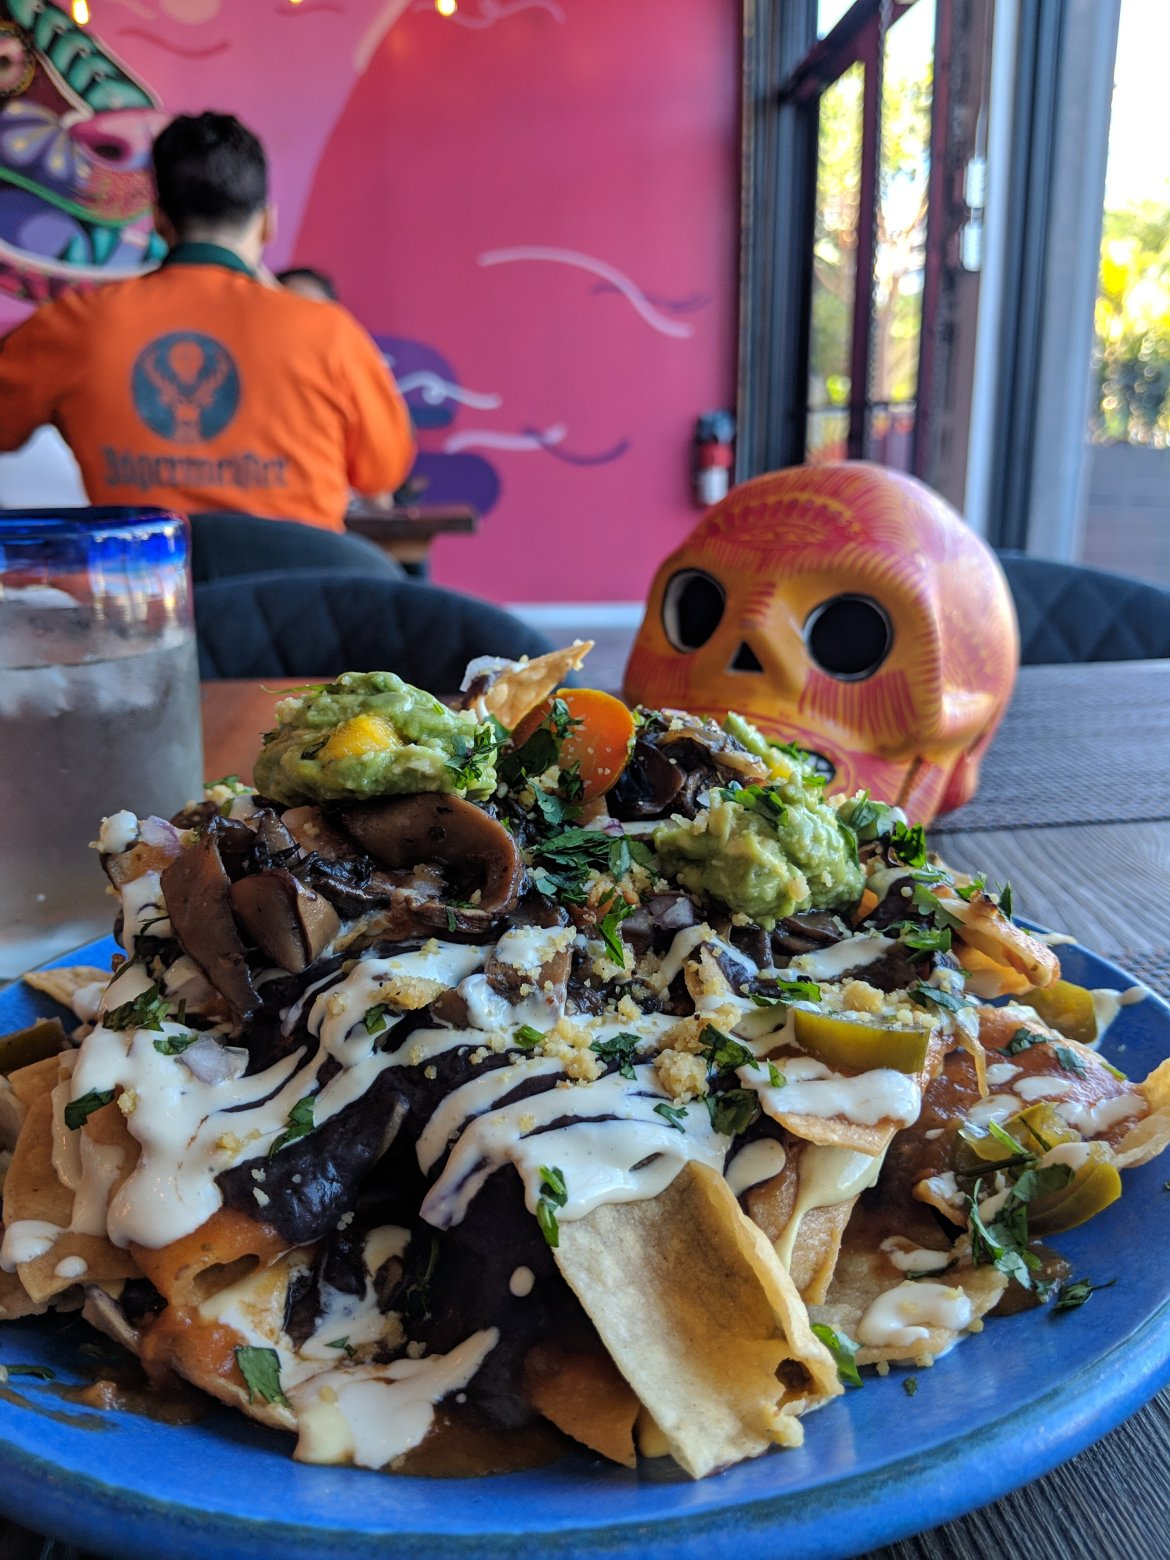 Vegan nachos at Charly's Vegan Tacos in Miami, Florida